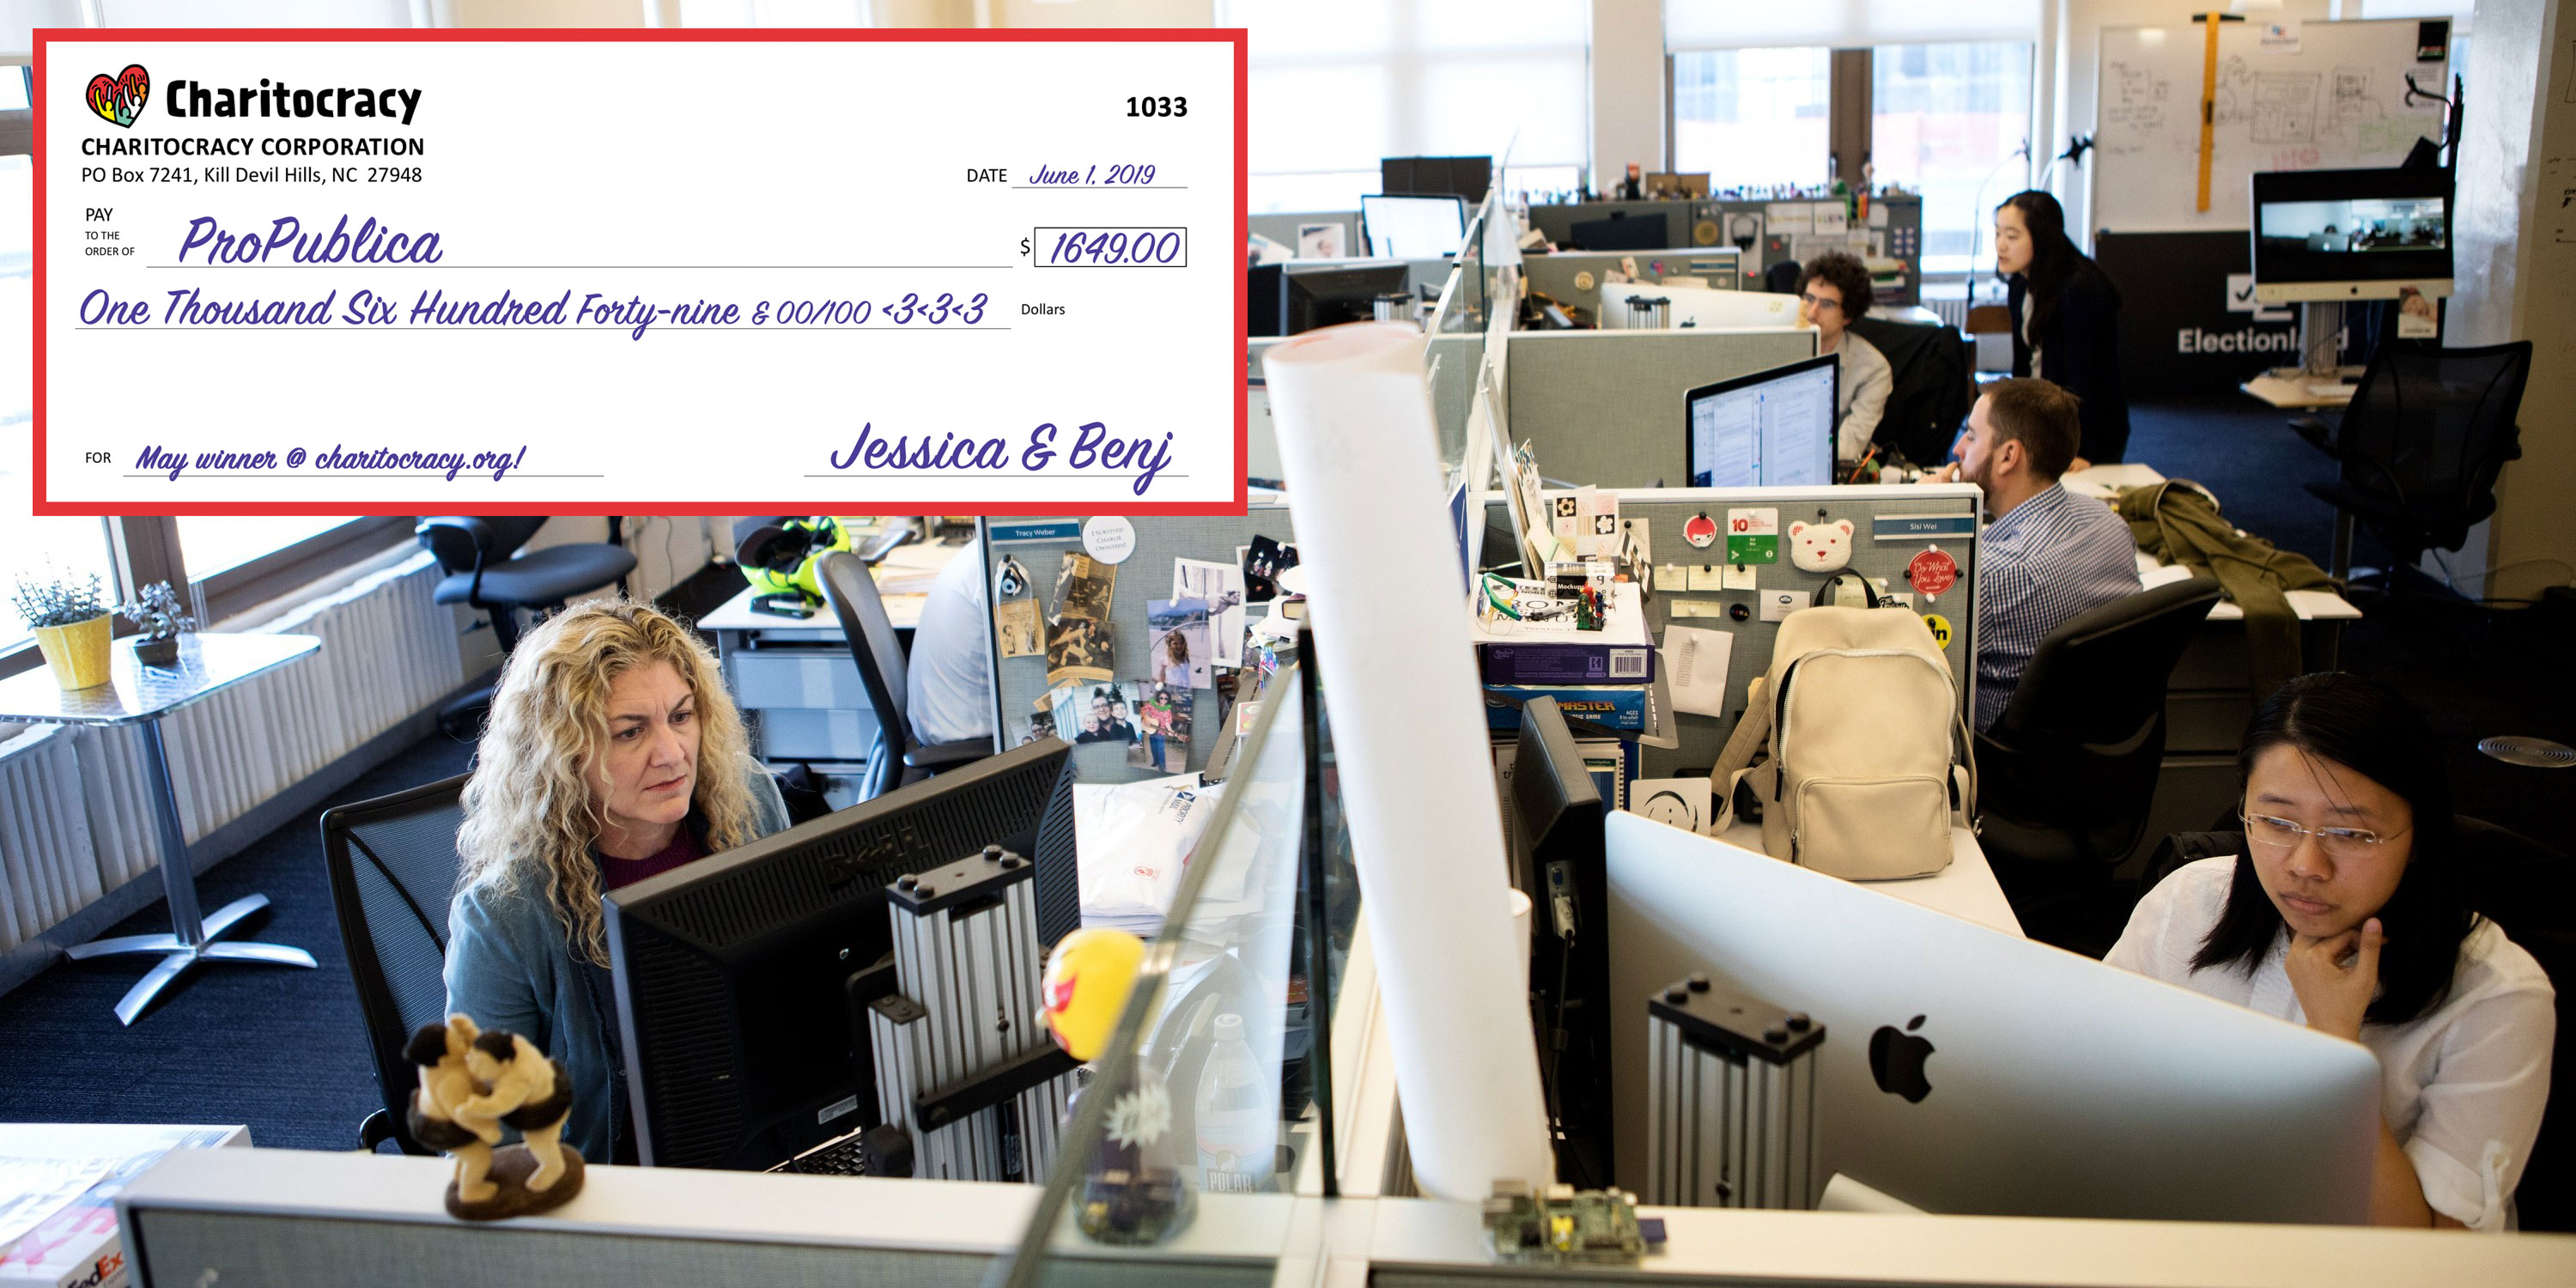 Charitocracy's 33rd check: to ProPublica for $1649